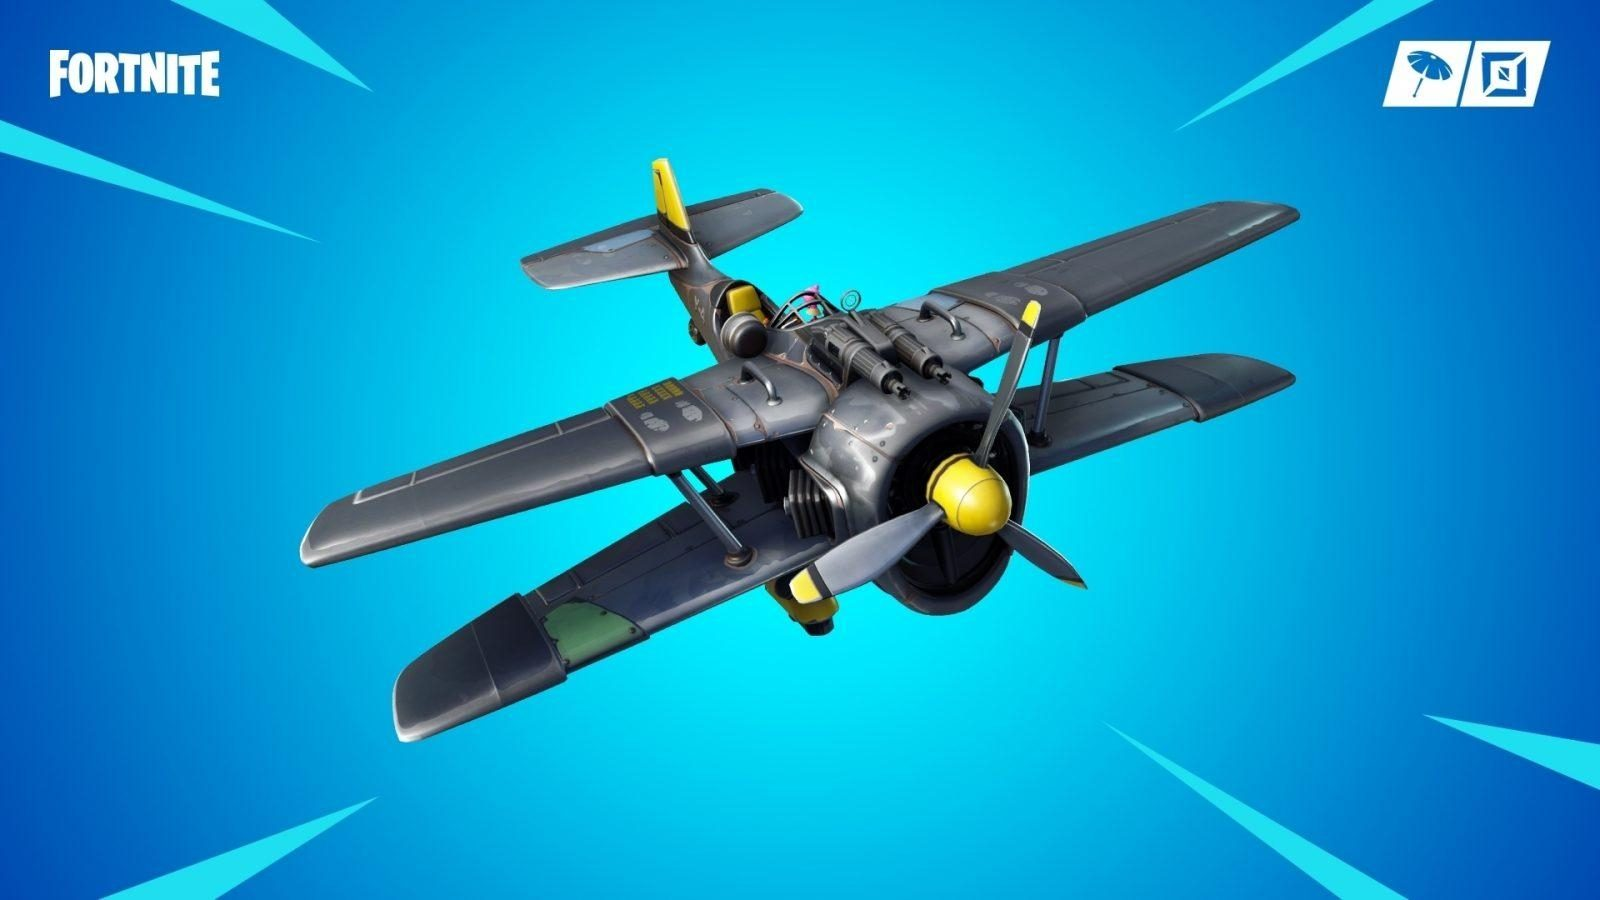 avión fortnite